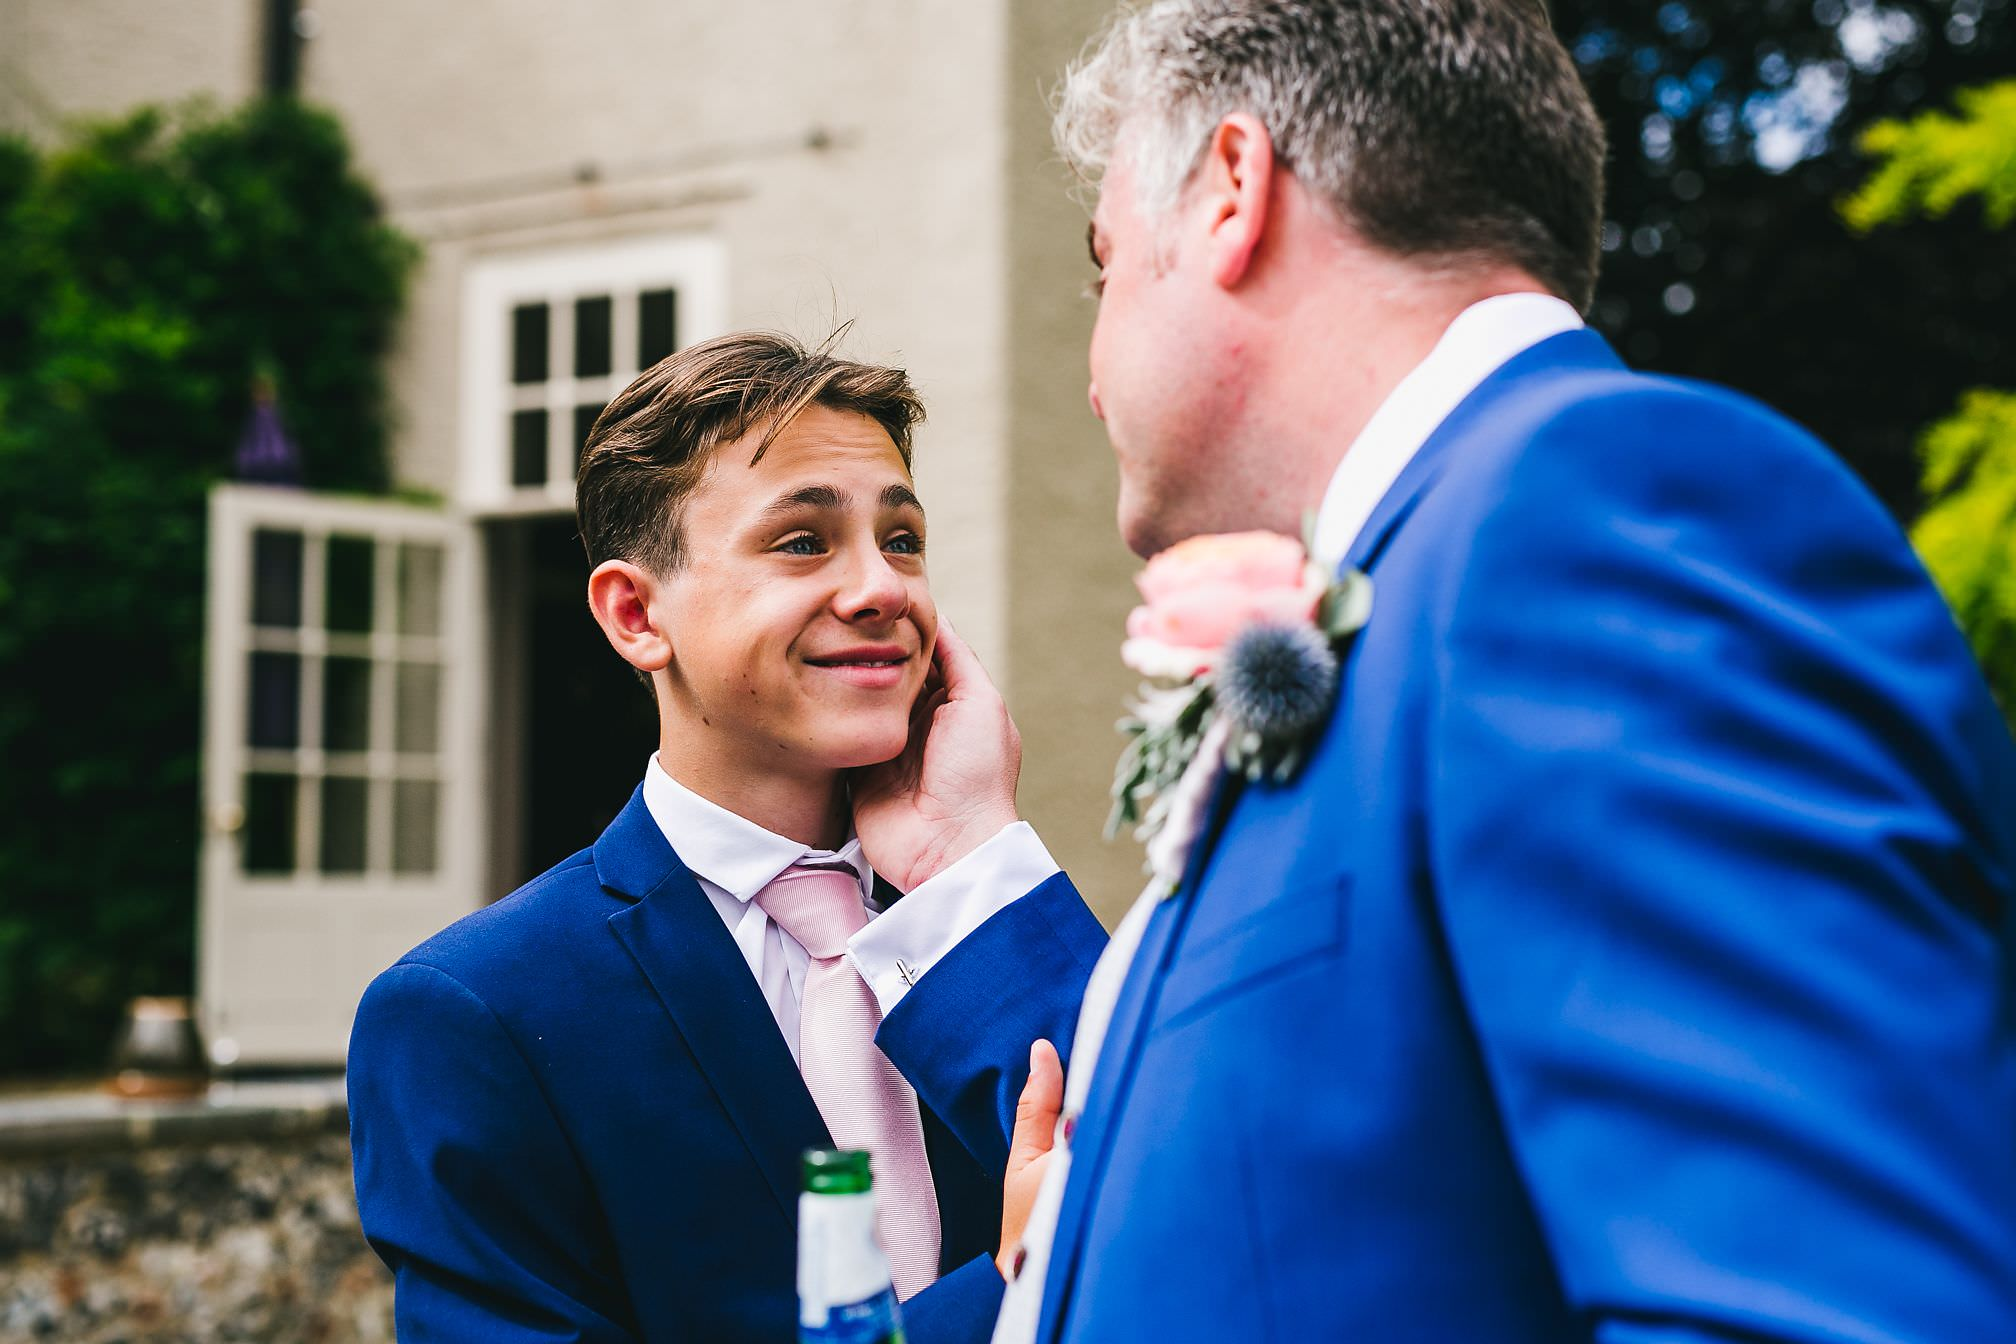 A proud moment between a Groom and his son